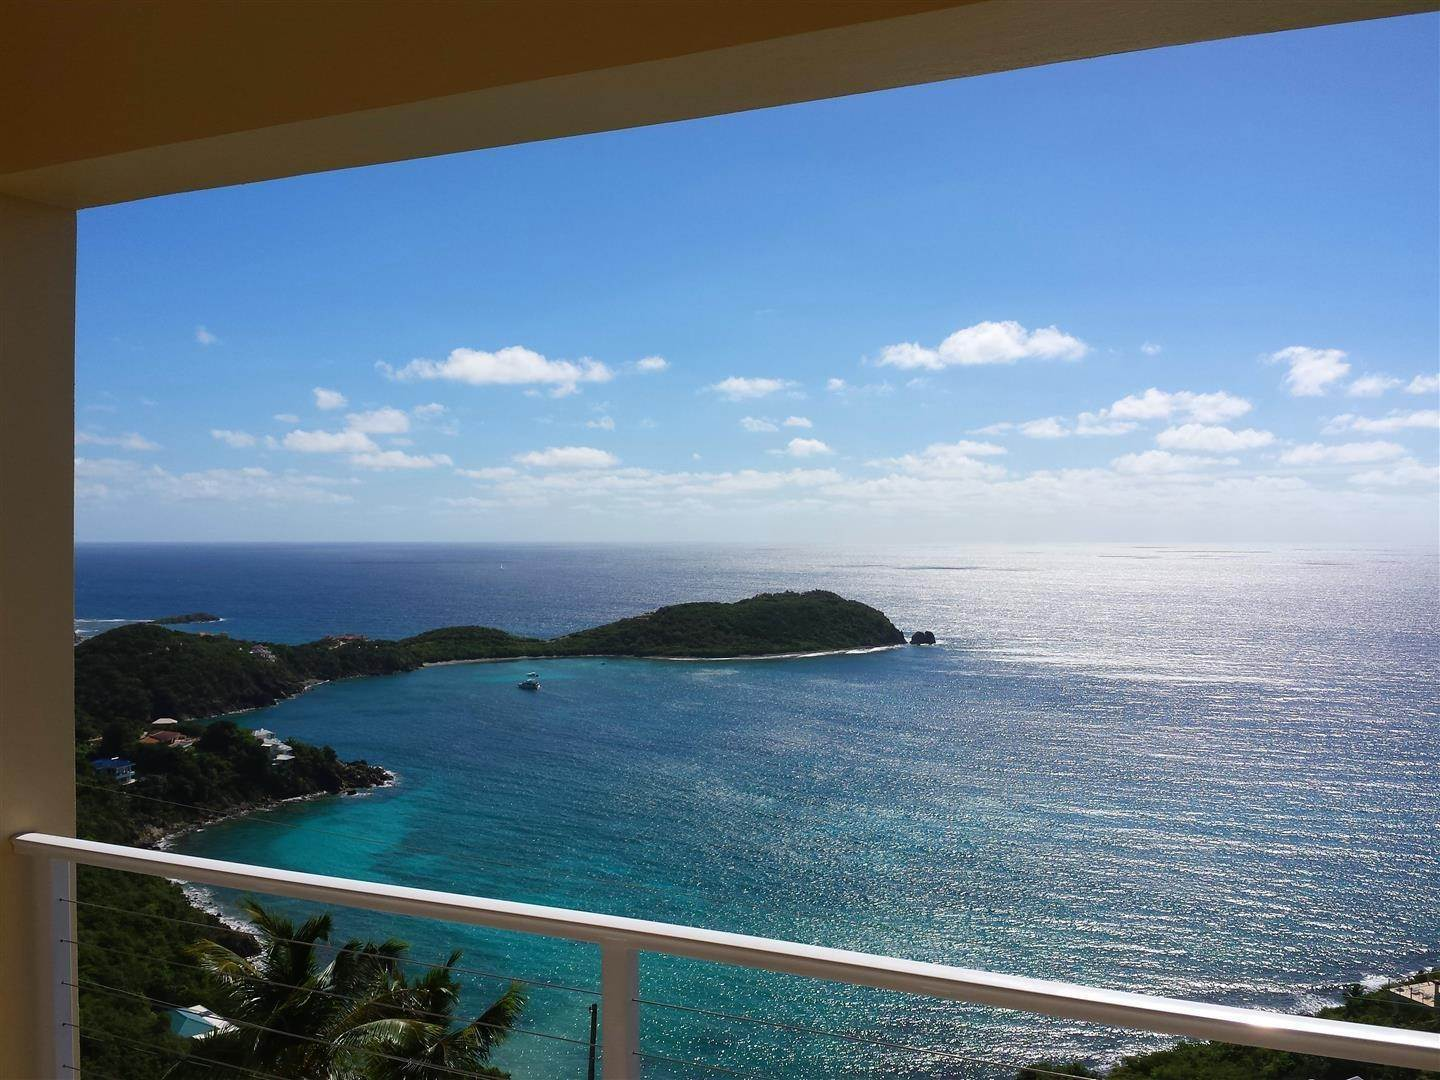 Single Family Home for Sale at 15C-10 Rendezvous & Ditleff Cruz Bay St John, Virgin Islands,00830 United States Virgin Islands